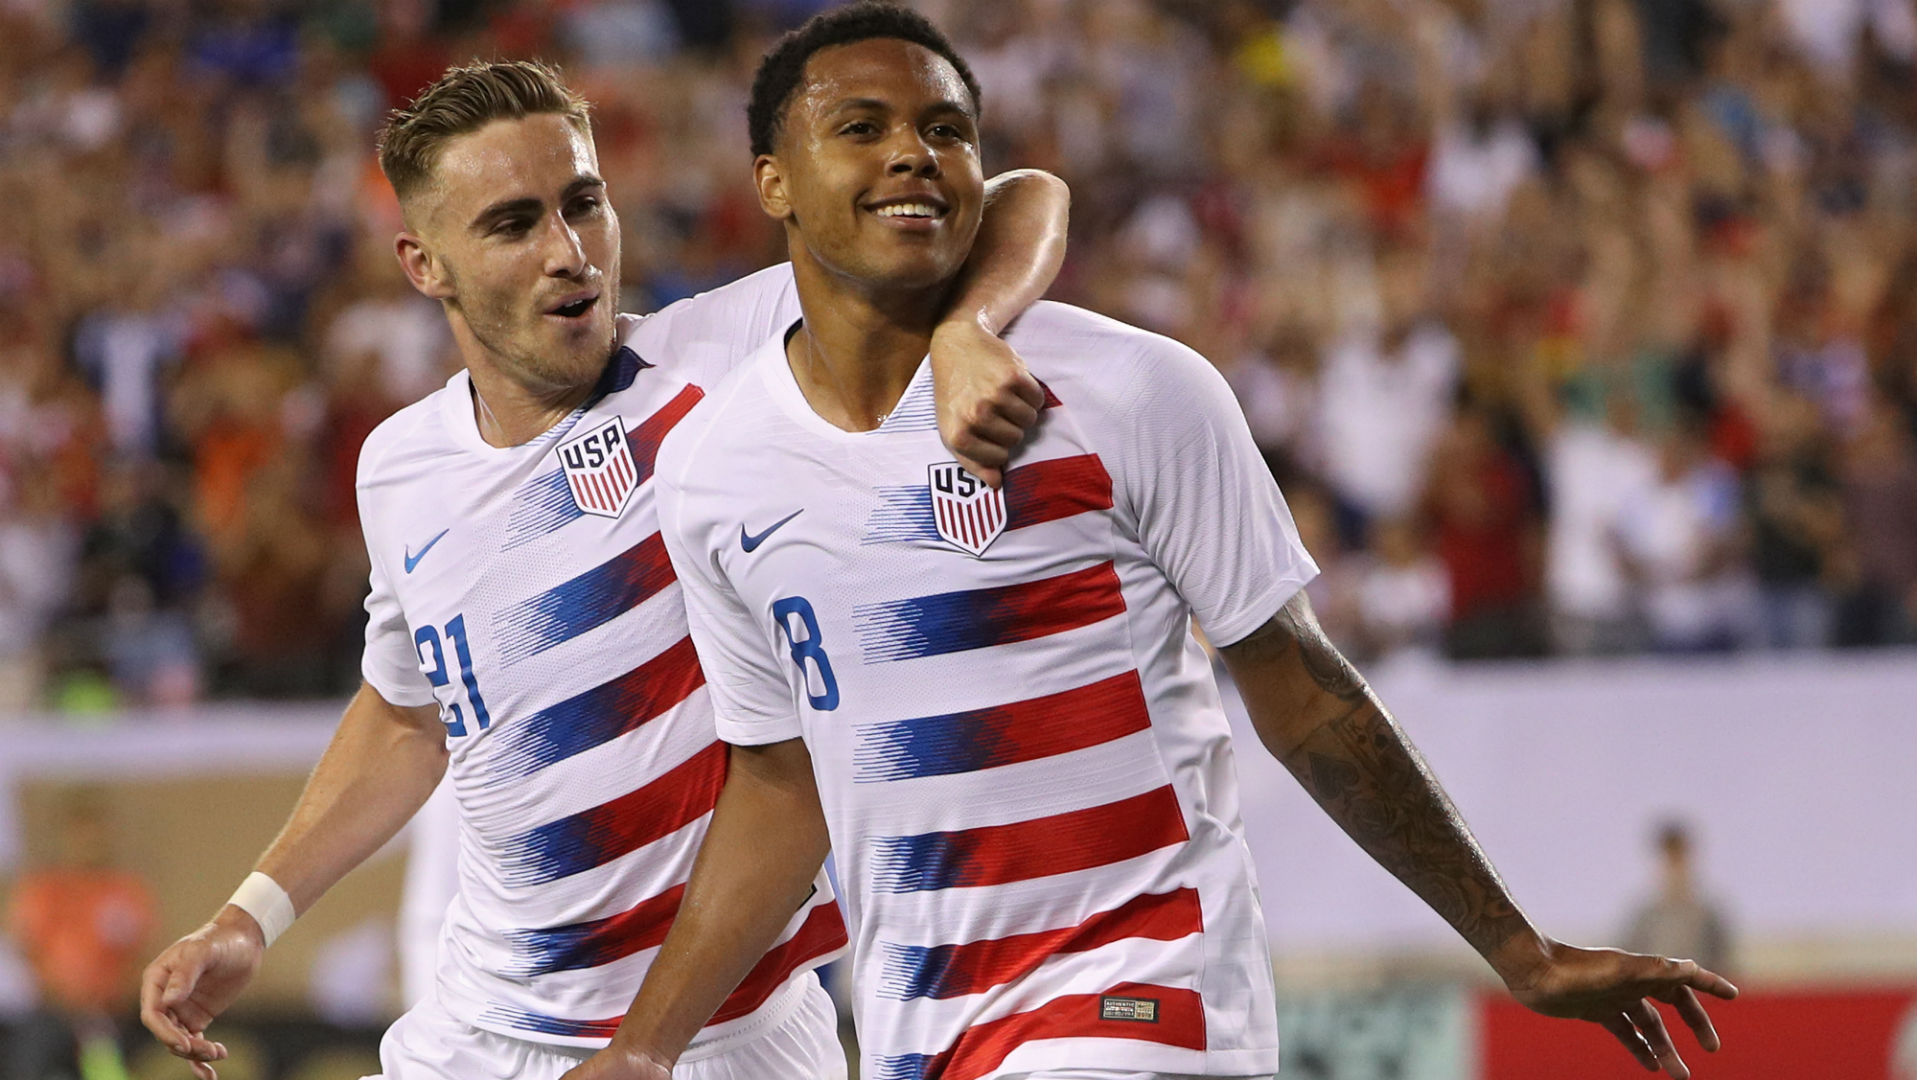 Gold Cup semi-final report: Jamaica 1 United States 3